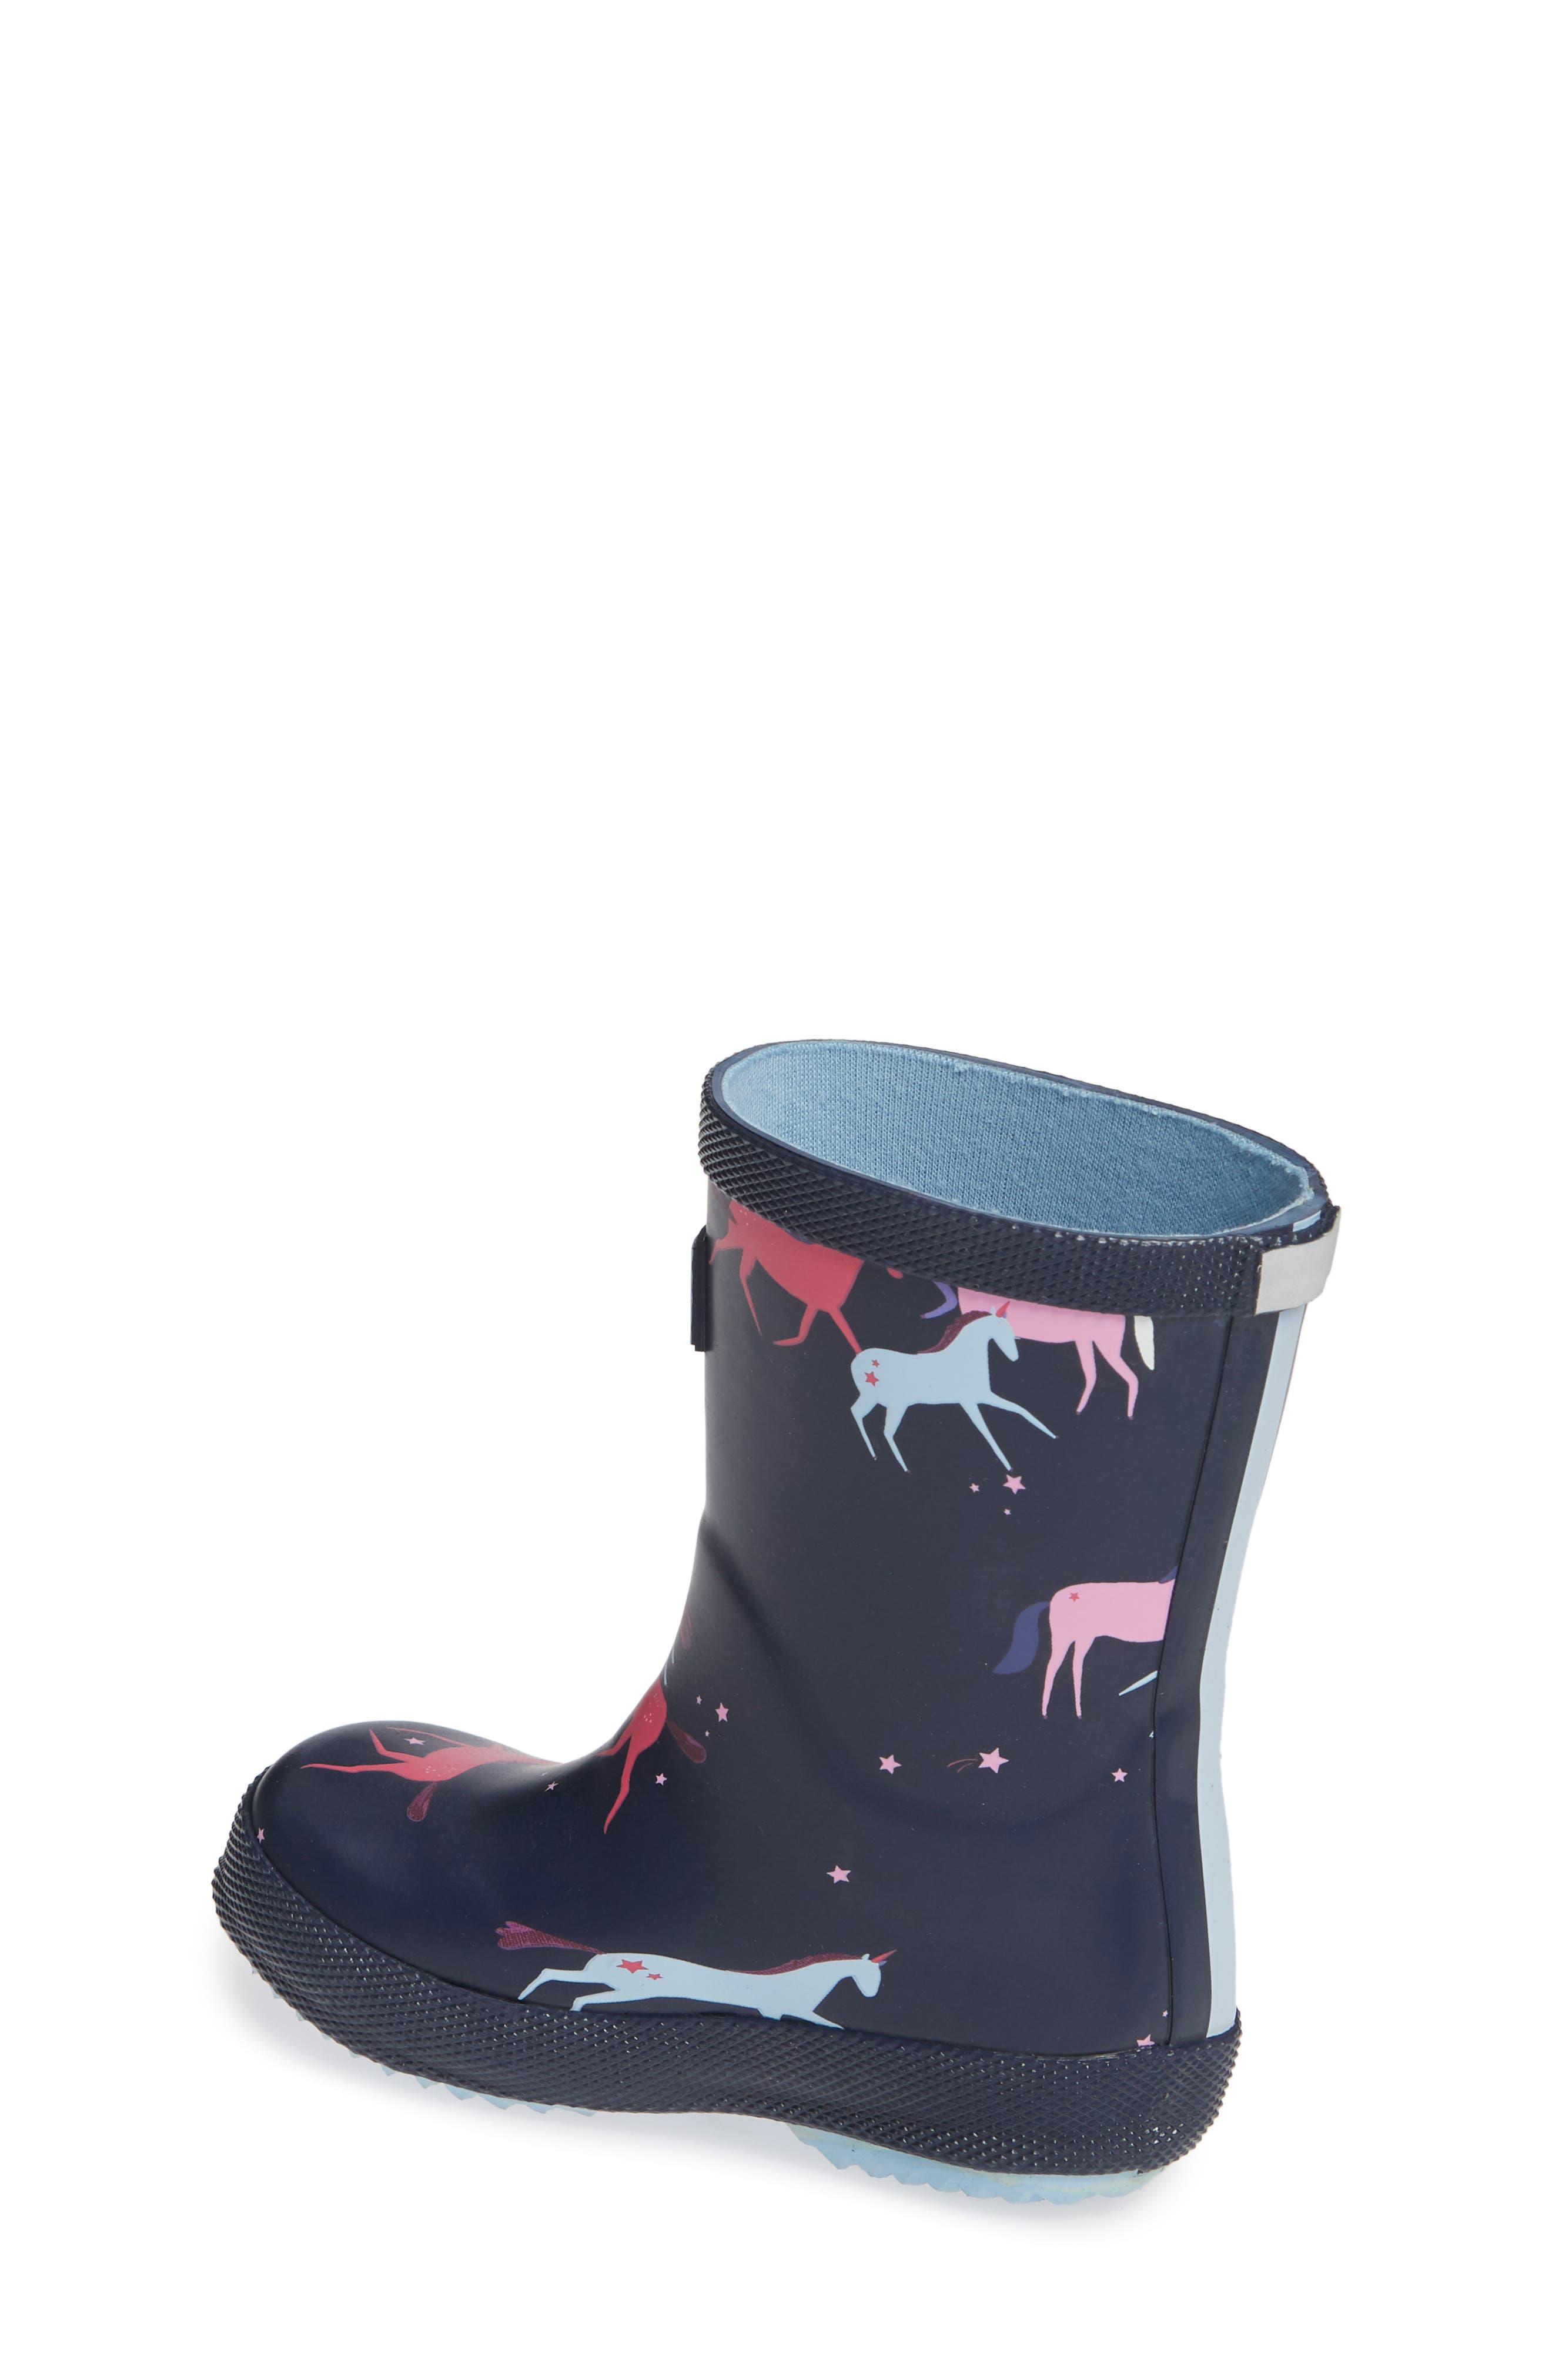 JOULES,                             Baby Welly Print Waterproof Boot,                             Alternate thumbnail 2, color,                             NAVY MAGICAL UNICORN